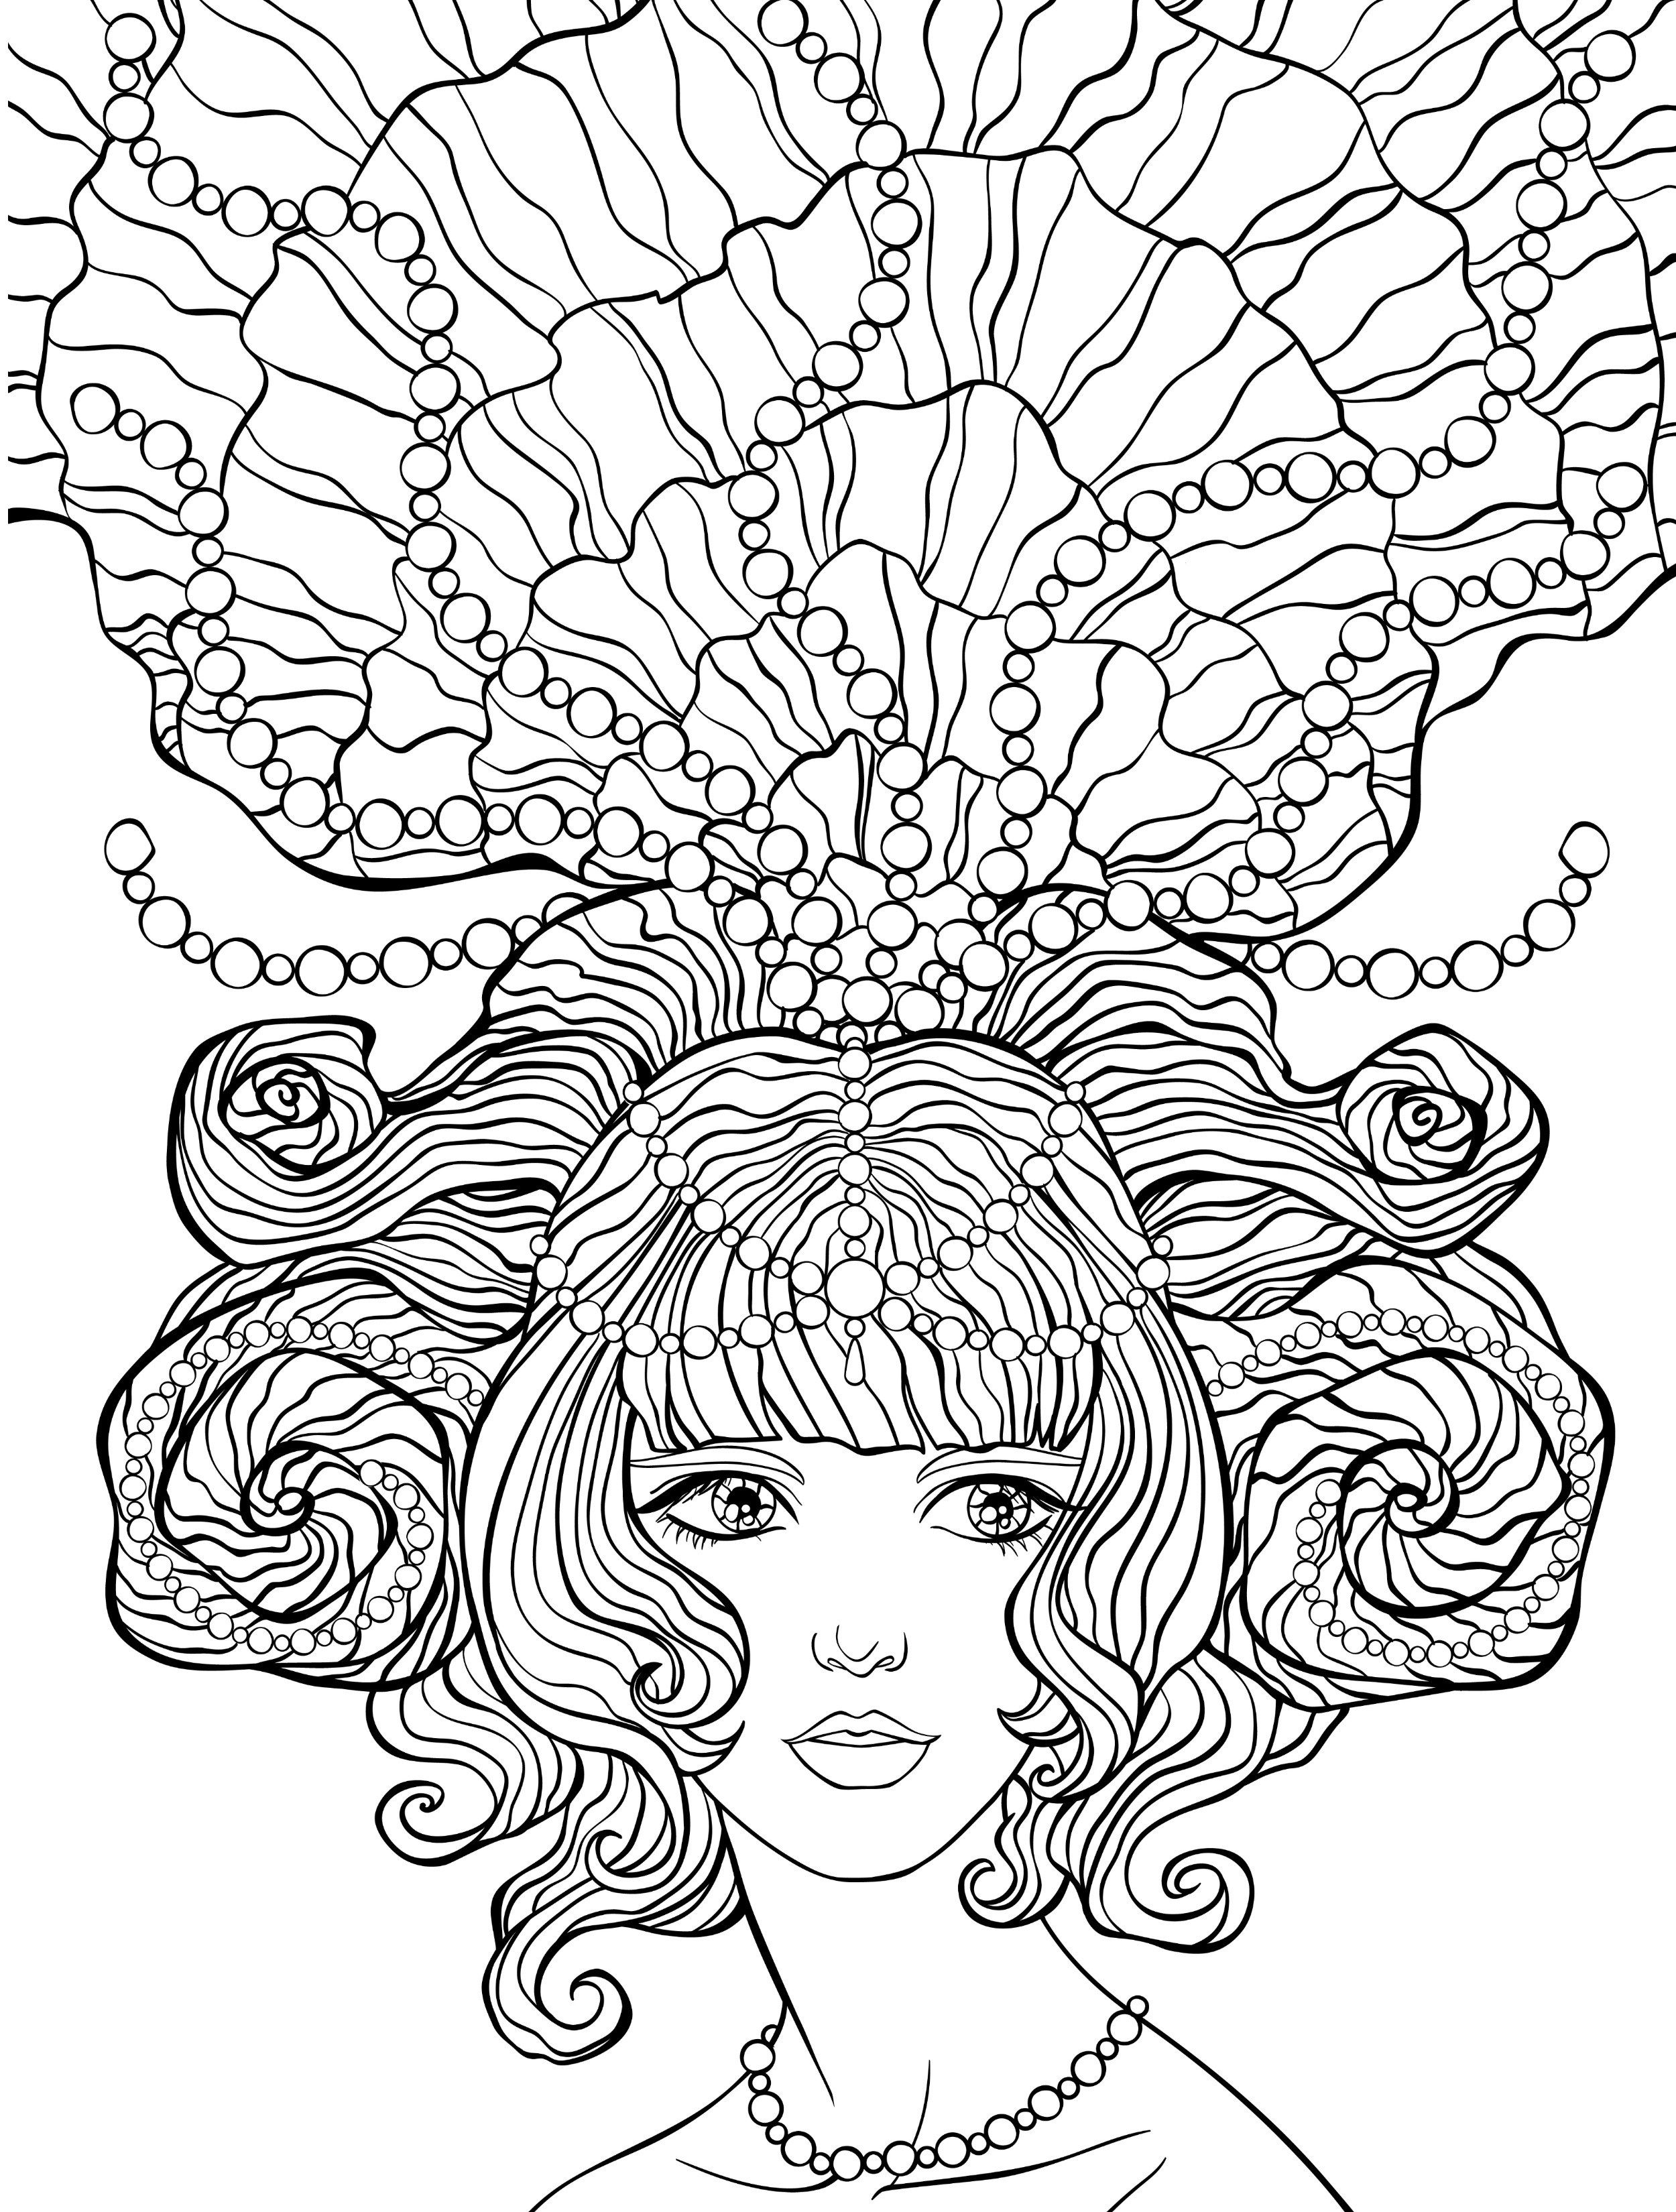 Wax Moth Coloring Pages